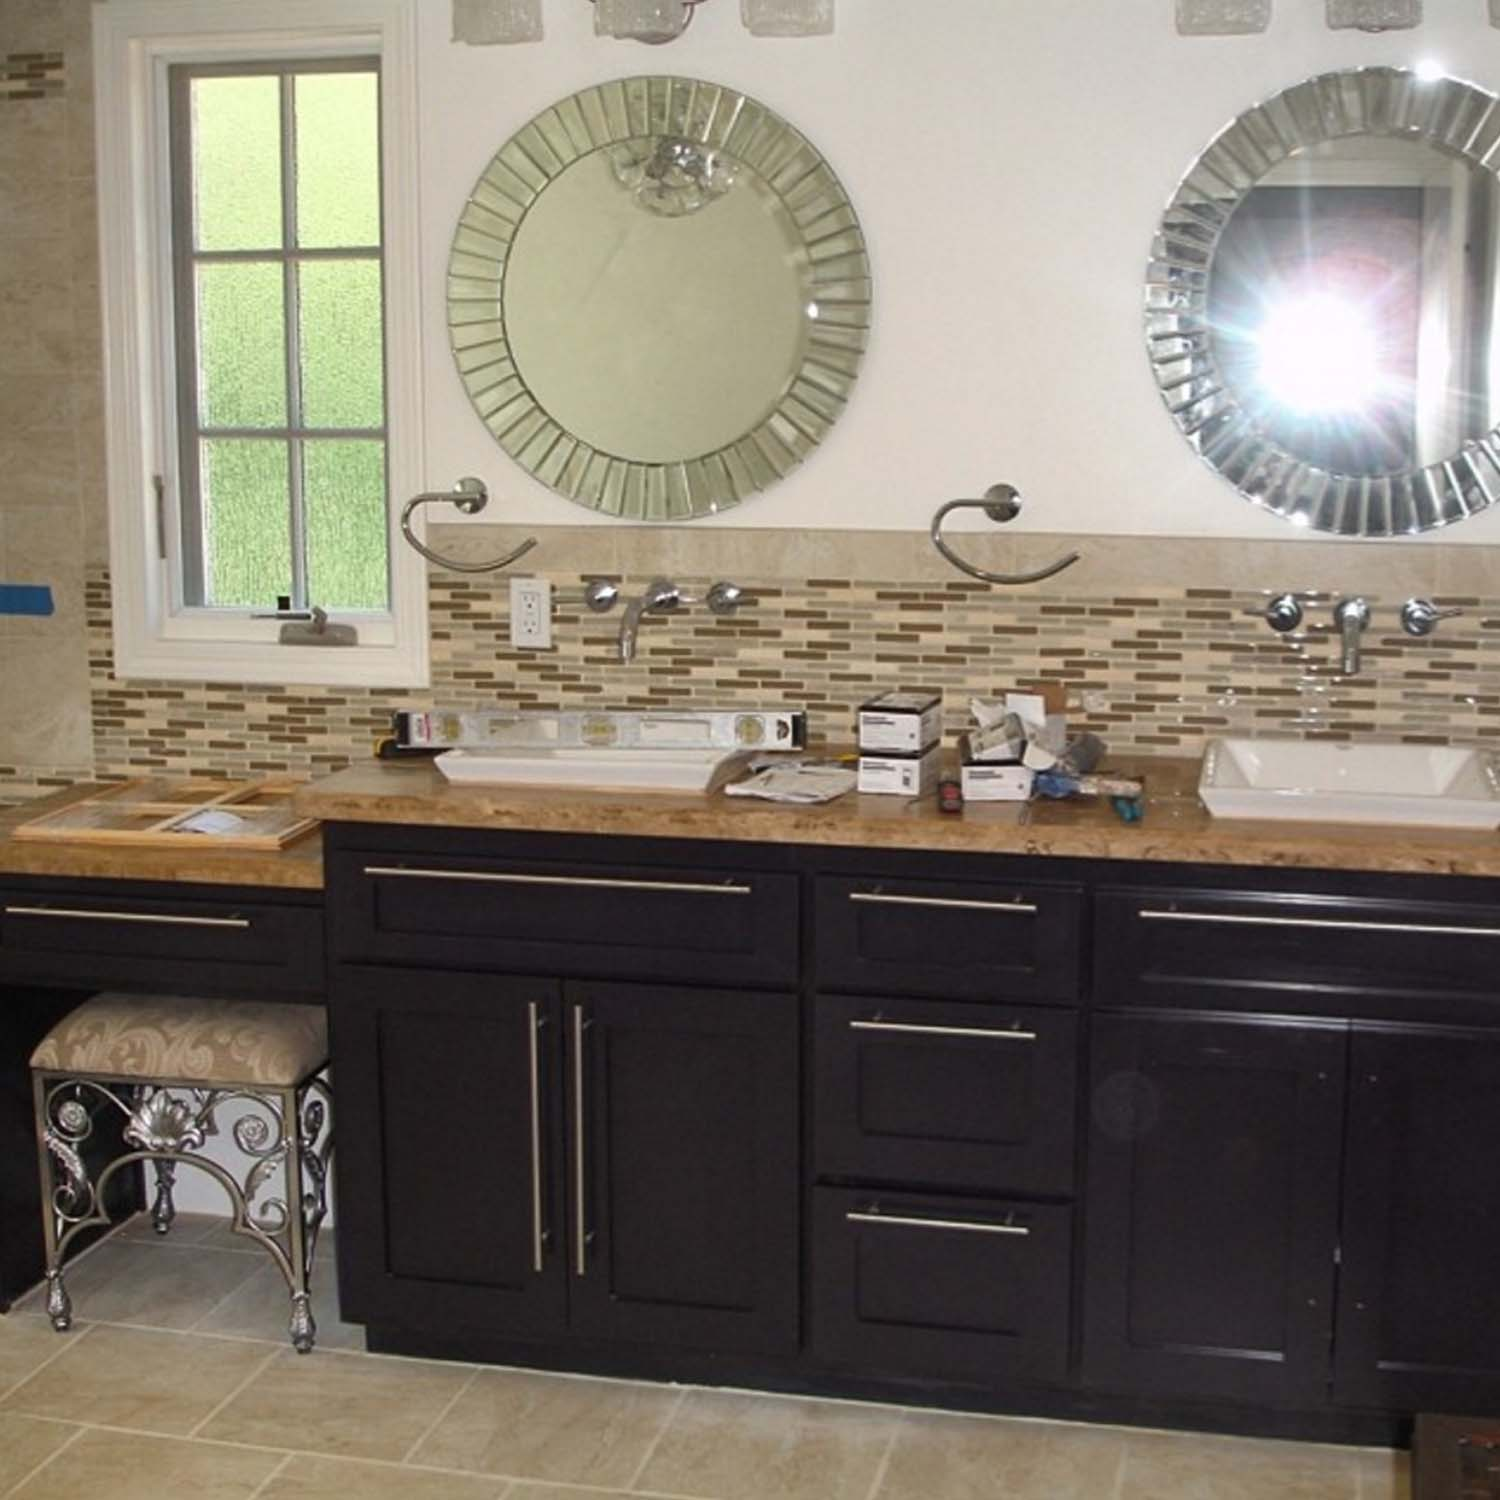 Custom Kitchen Cabinets: Heredia's Custom Cabinets